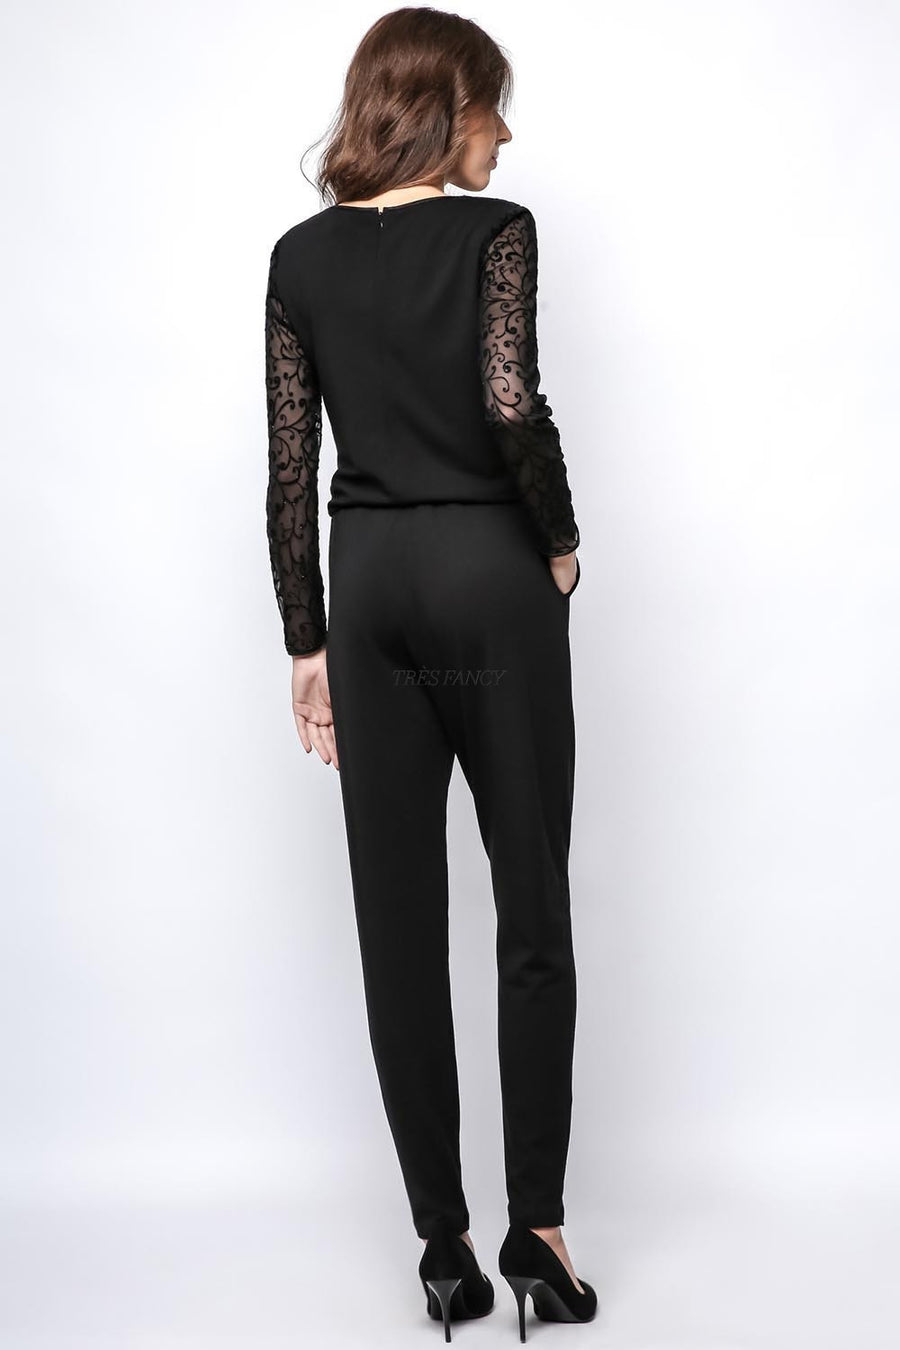 Suit 66789 Enny, Playsuits and Jumpsuits for Women, Enny, Très Fancy, black, 38, , , 66789, [fashion_accessories_online_shopping_canada]